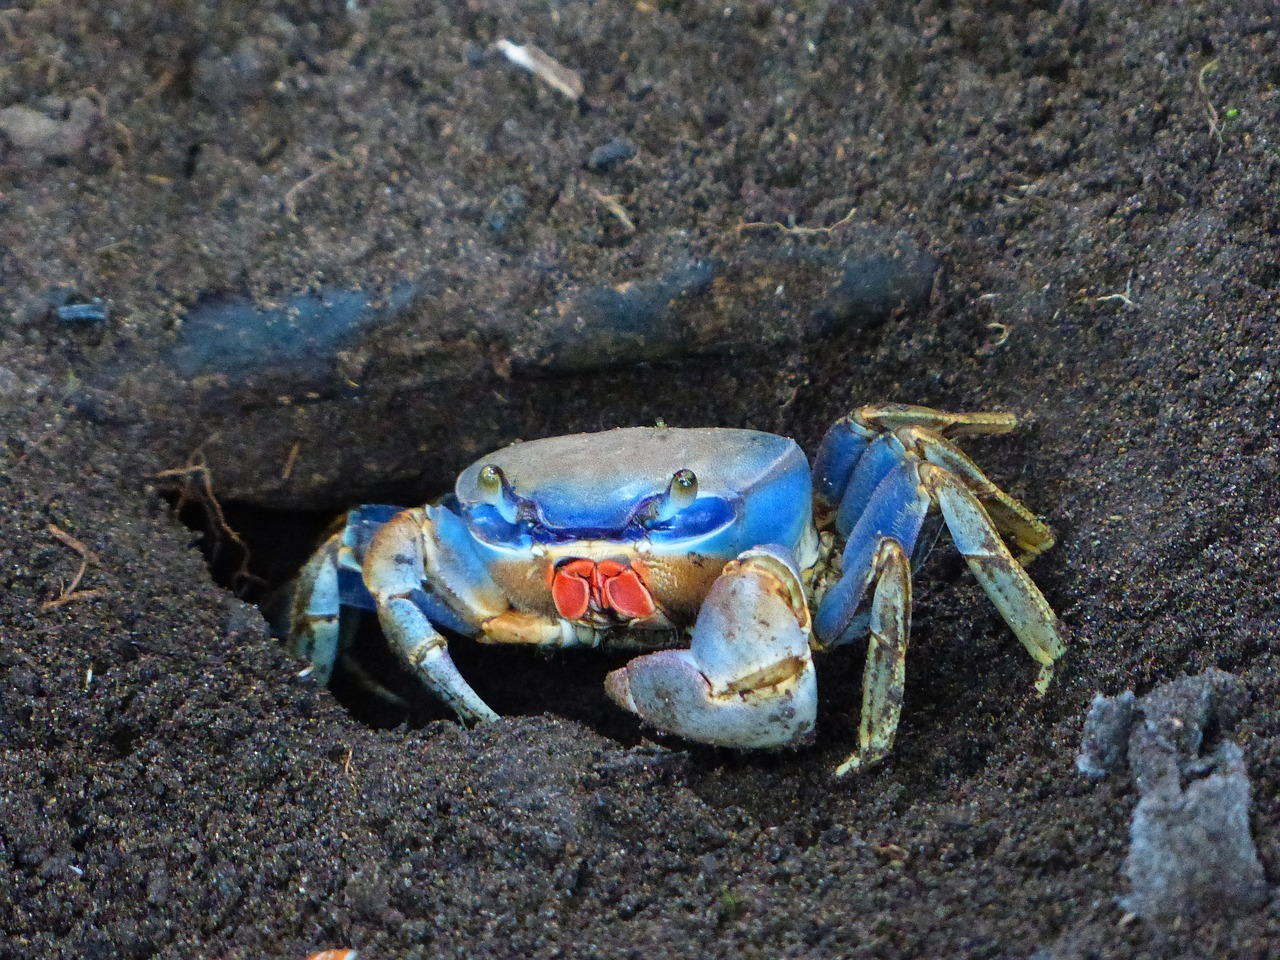 cardisoma guanhumi,west atlantic land crab,blue,colorful,hide,foxhole,ground,cave,free pictures, free photos, free images, royalty free, free illustrations, public domain